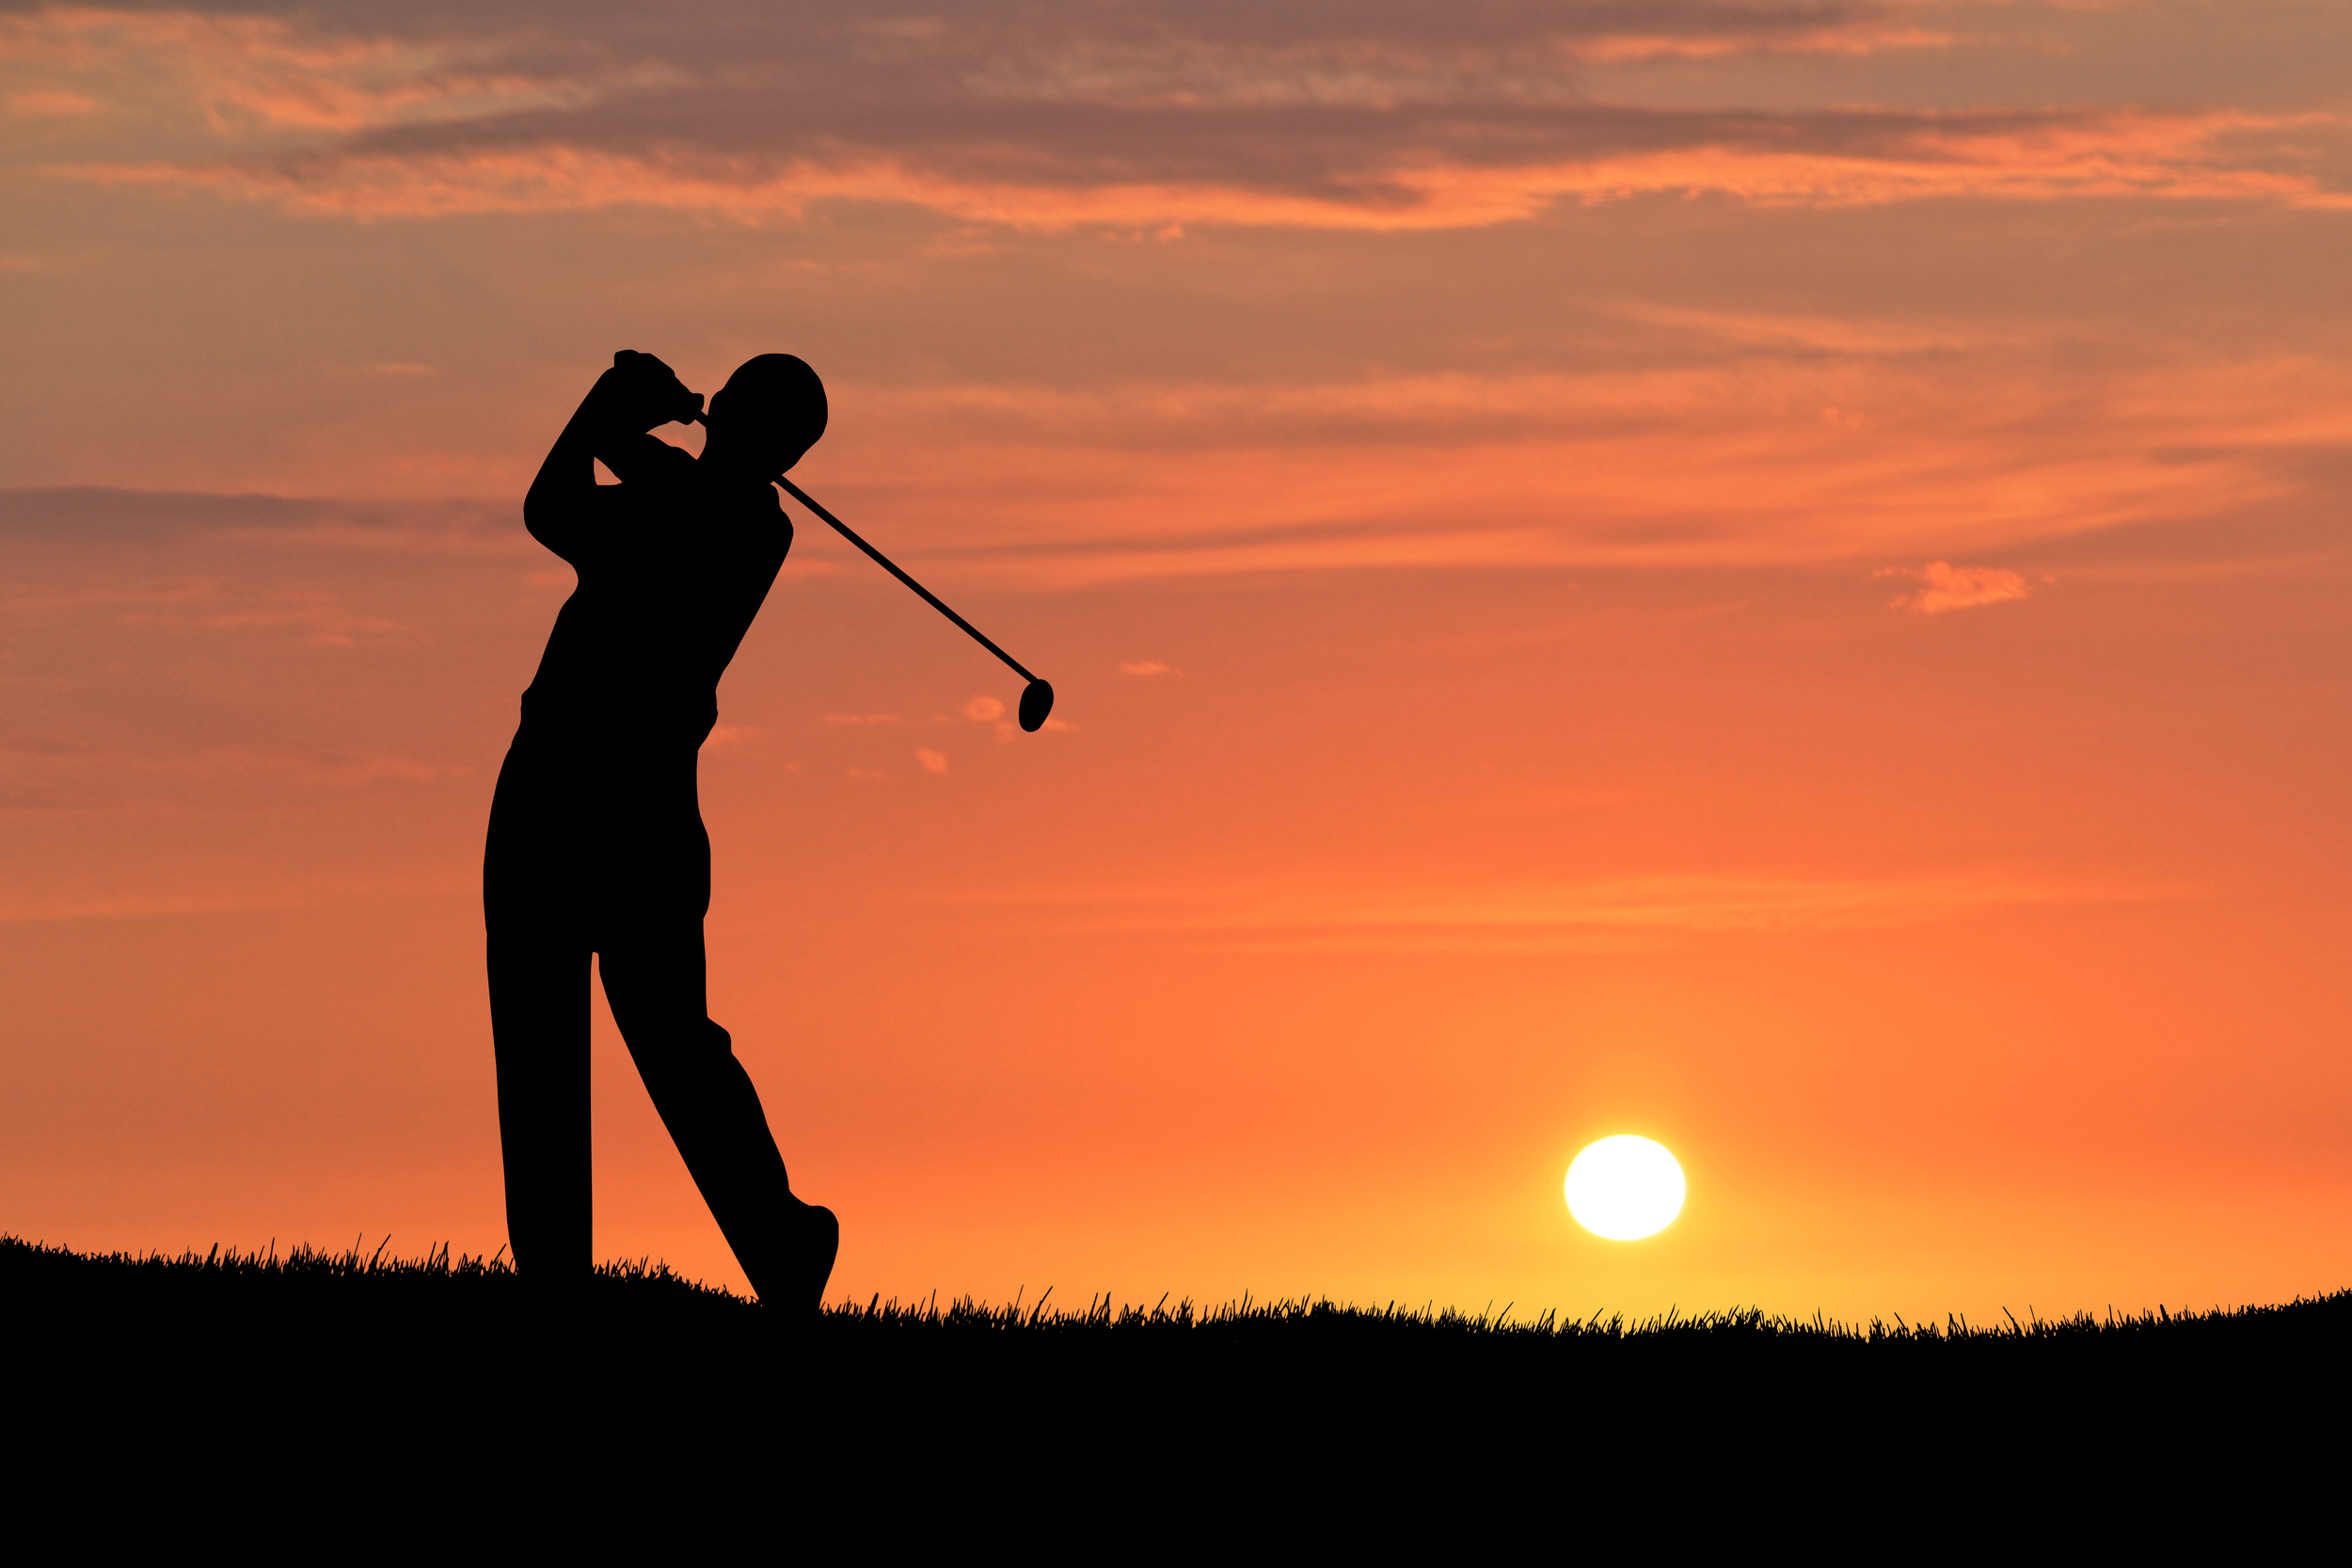 Consistent golf is a beautiful thing. Find it at Limitless Golf based in Amersham and Chesham